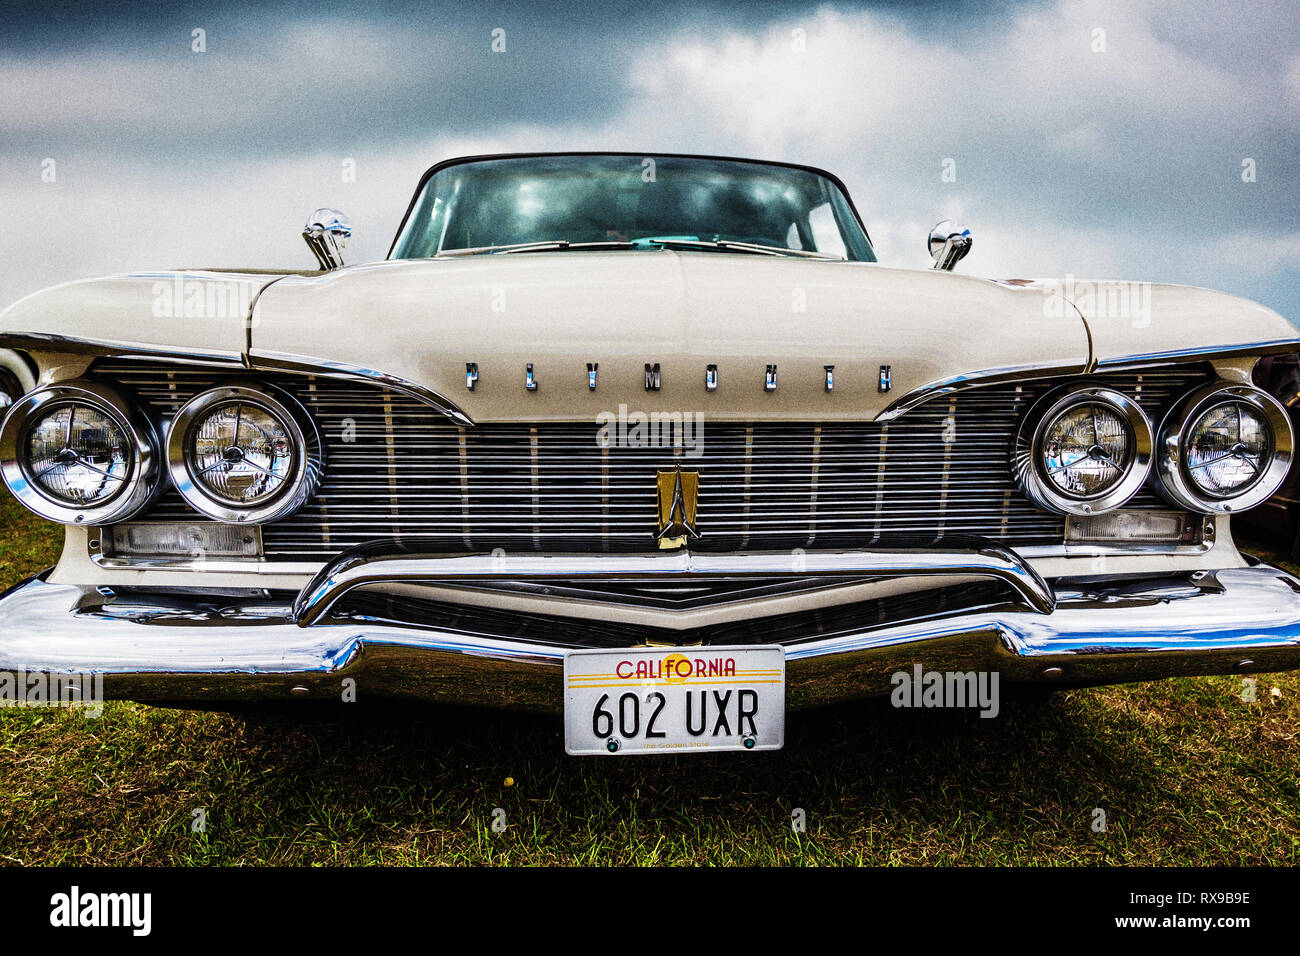 American Muscle Car - Stock Image